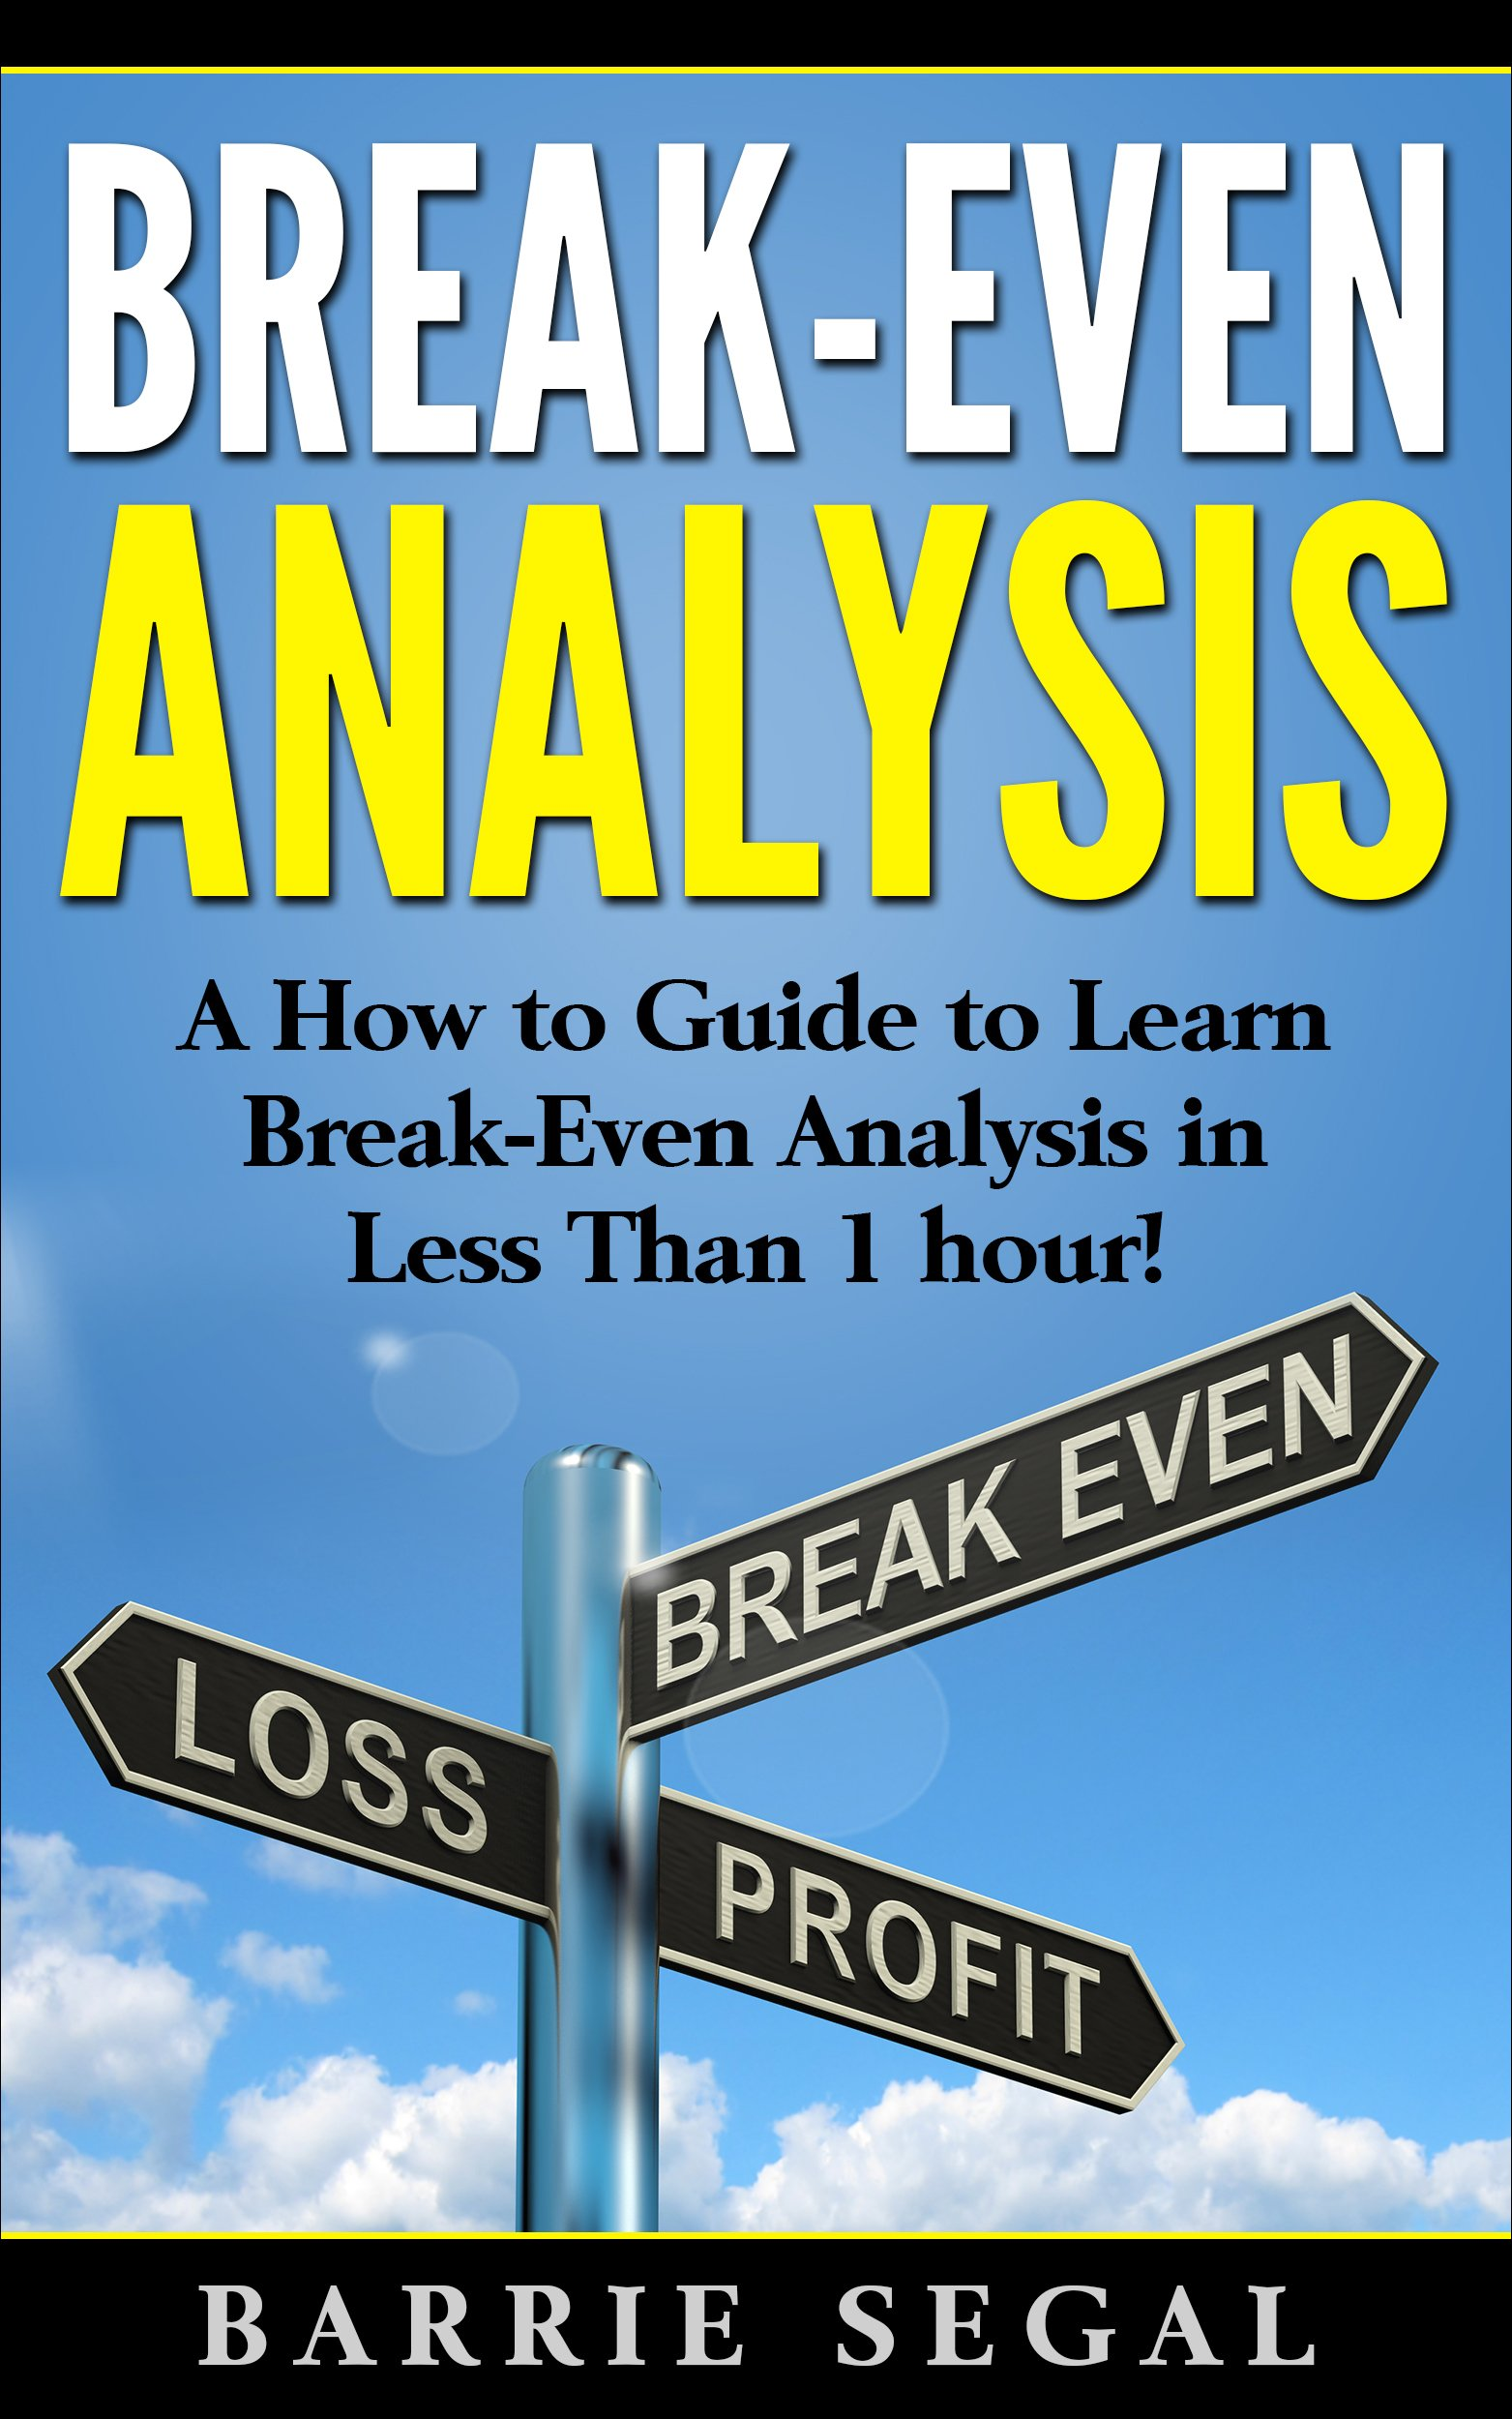 Break-Even Analysis: A How to Guide to Learn Break-Even Analysis in Less Than 1 hour! (Financial Analysis)